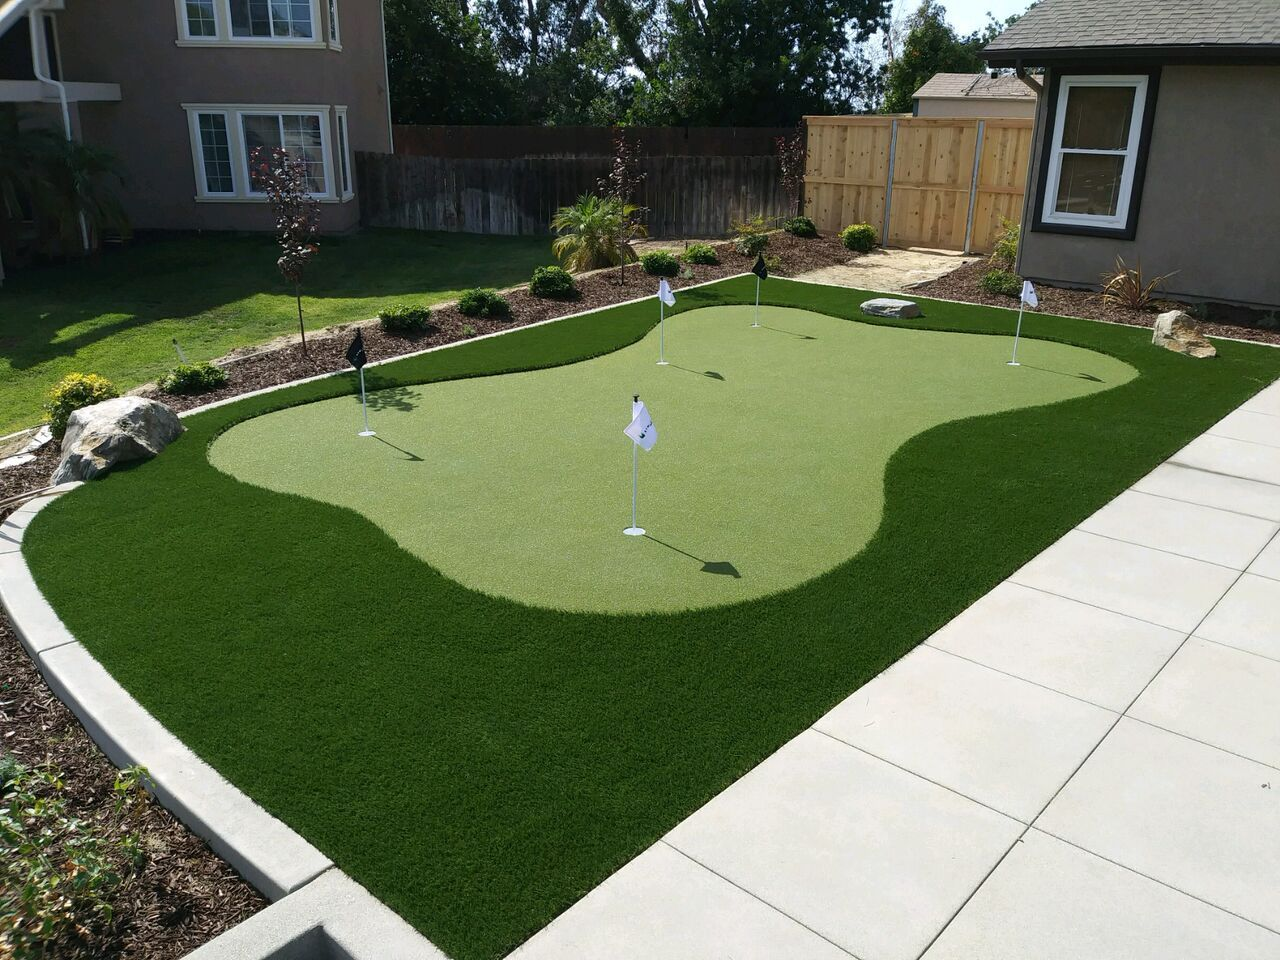 Urban Putting Green Front Yard Putting Green Artificial Grass Turf Backyard Ideas Turf Install Turf Backyard Artificial Grass Backyard Green Backyard